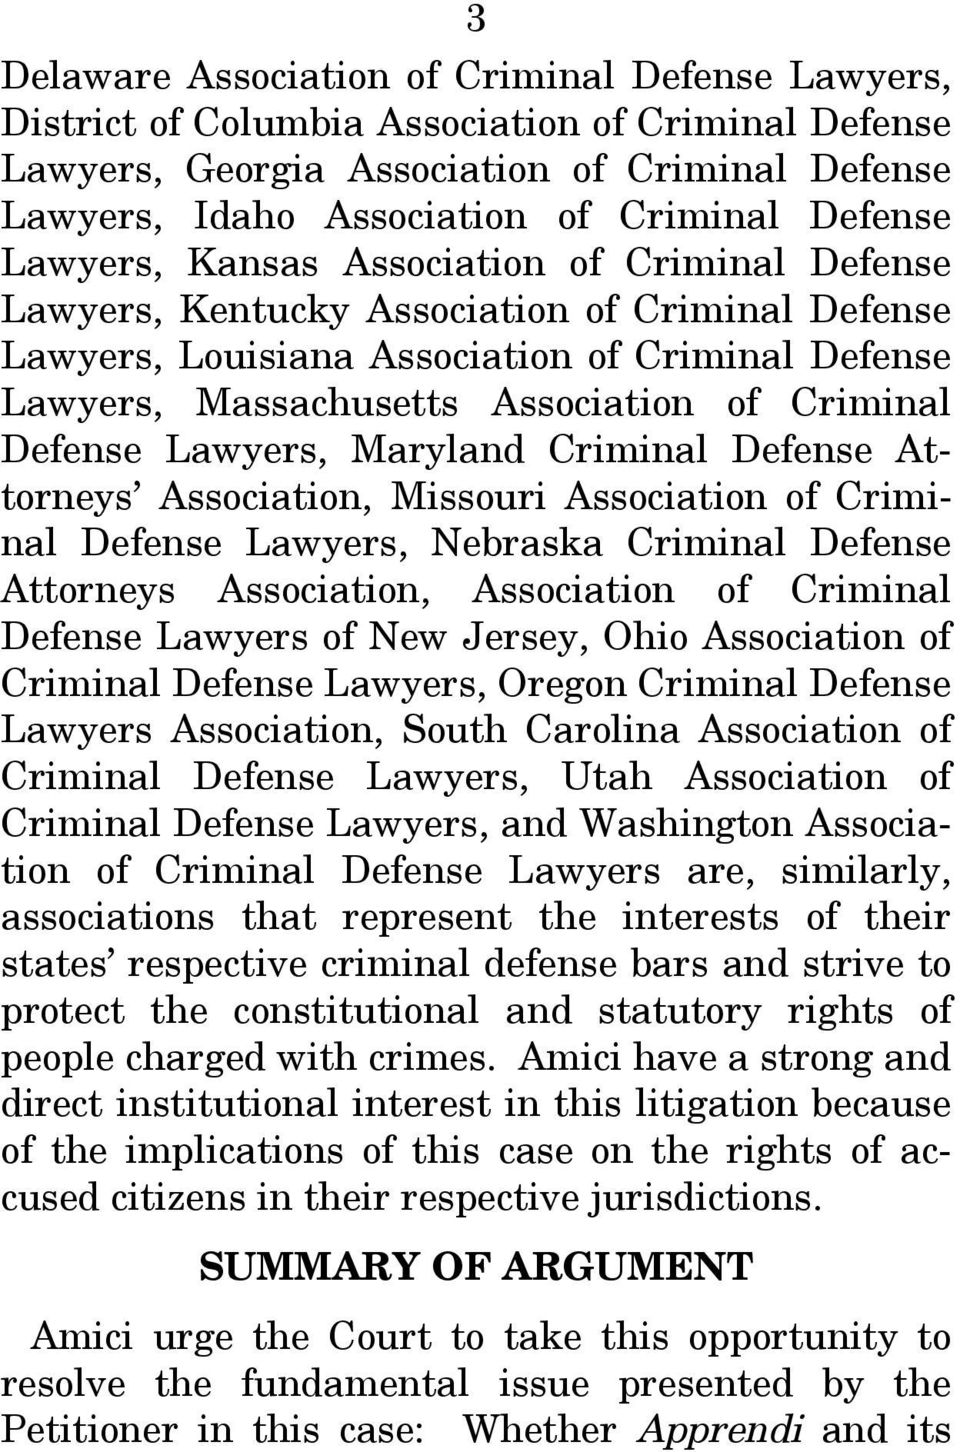 Criminal Defense Lawyers, Maryland Criminal Defense Attorneys Association, Missouri Association of Criminal Defense Lawyers, Nebraska Criminal Defense Attorneys Association, Association of Criminal